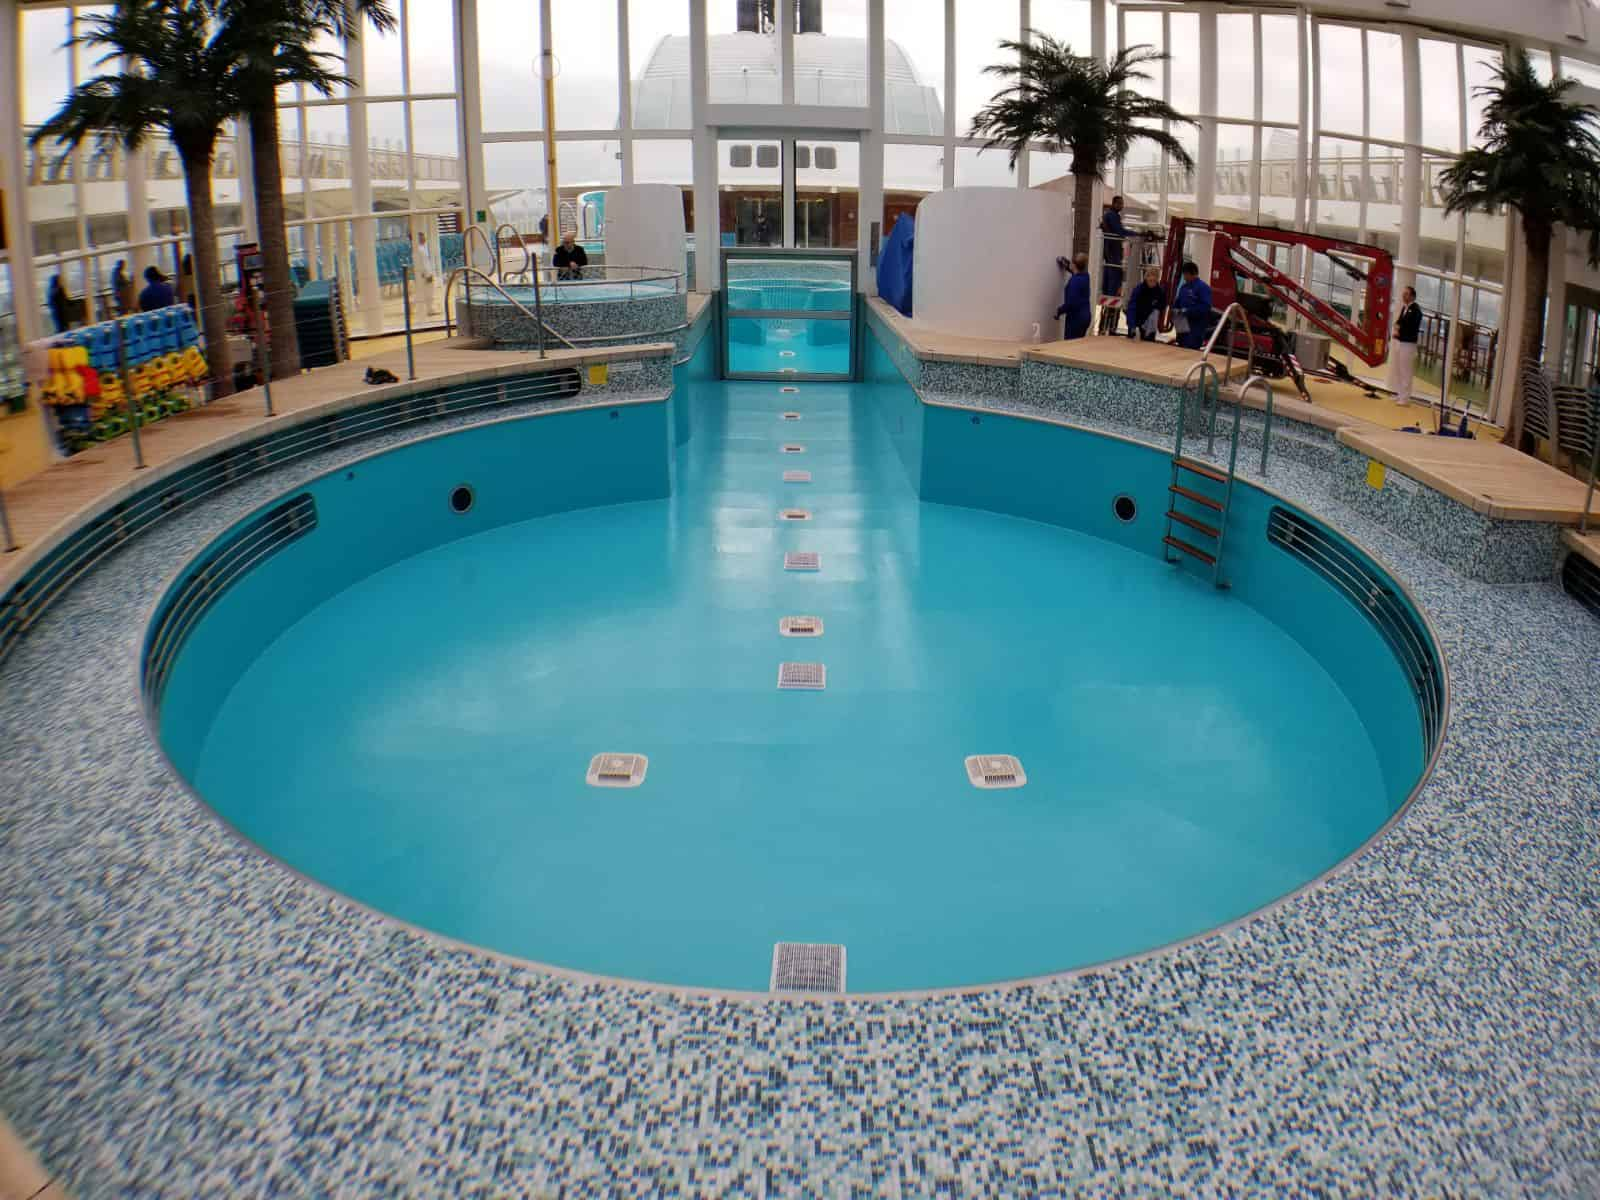 Circular swimming pool painted in light blue